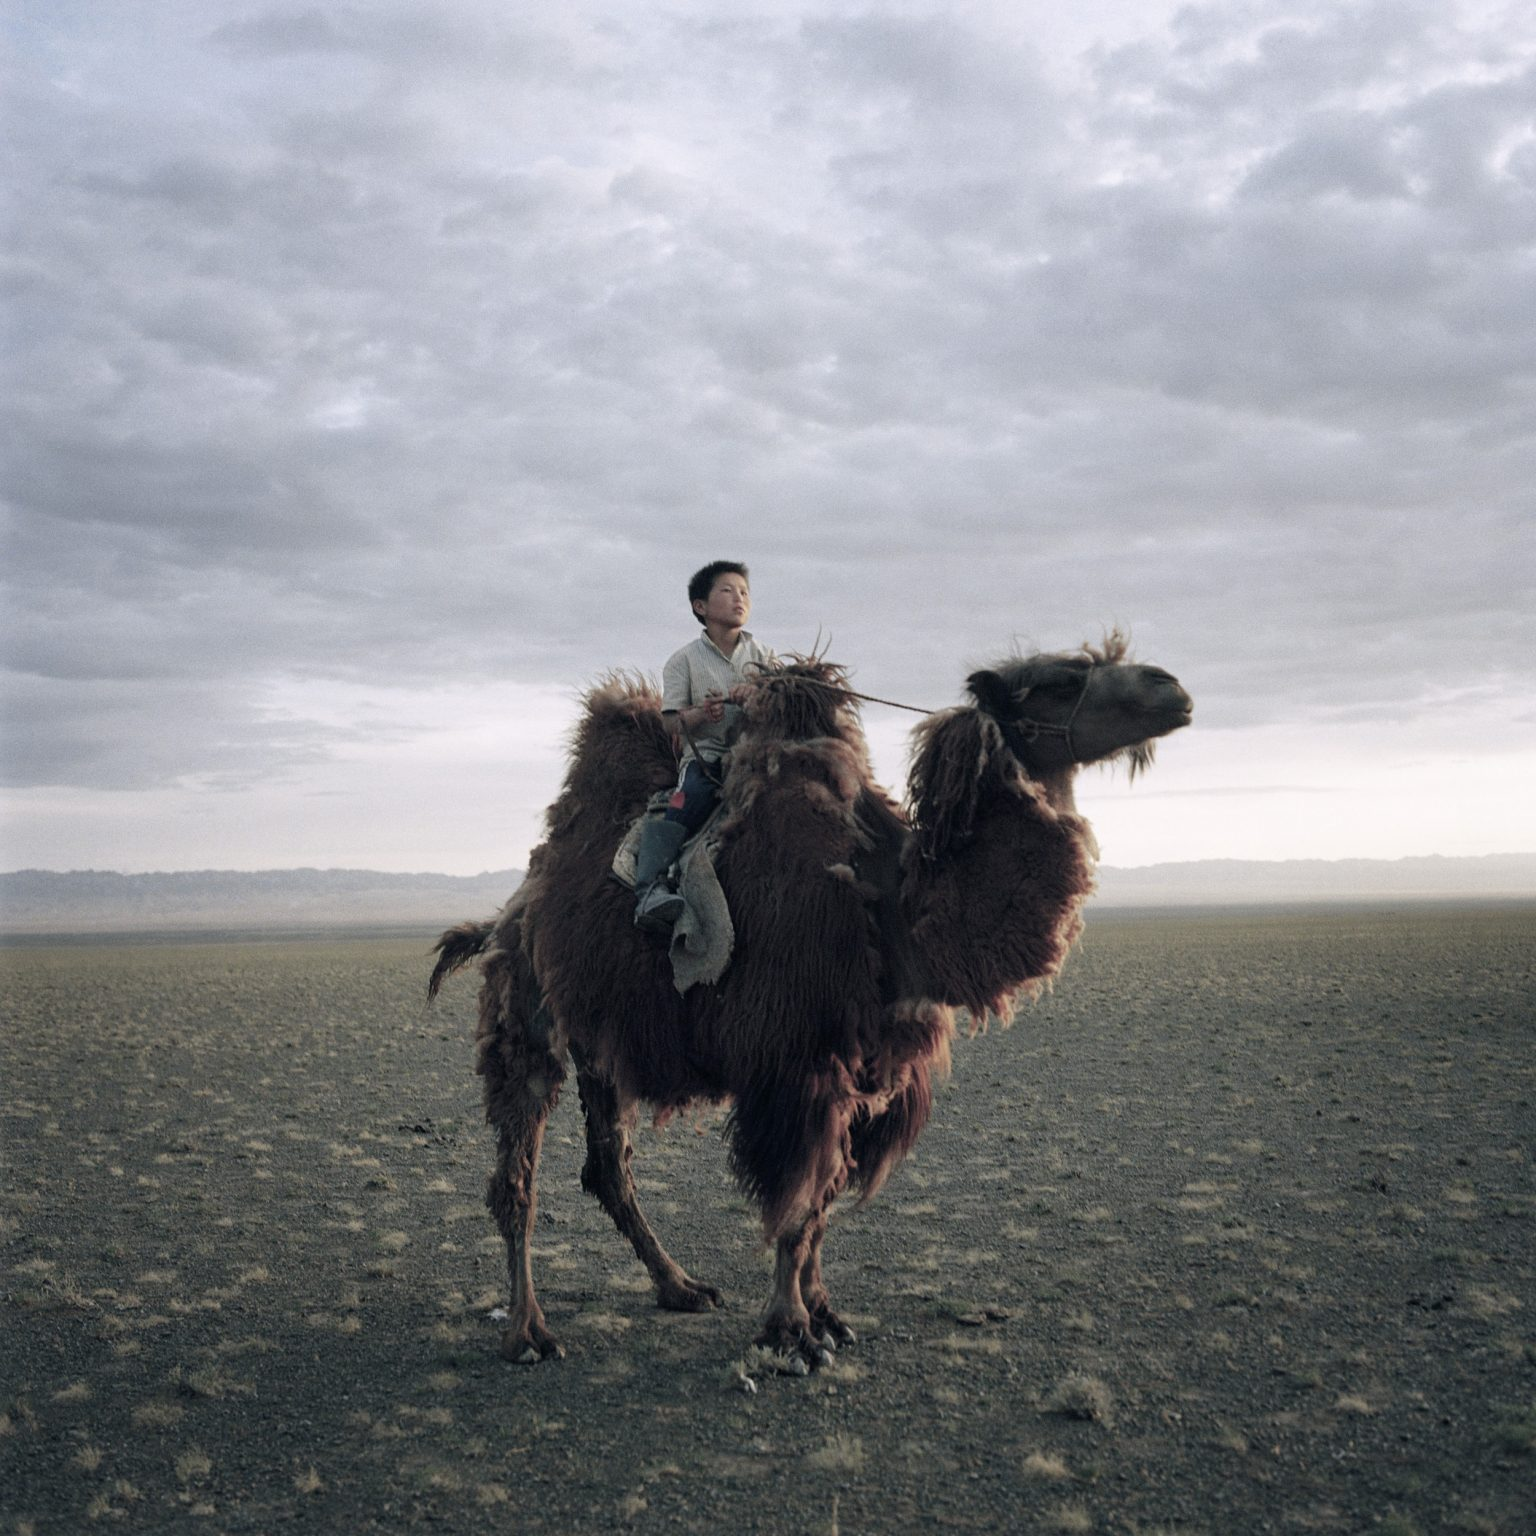 Mongolia, Gobi, Omongovi, 2012 Munkhdul  is going to move the camels herd in a better pasture place.